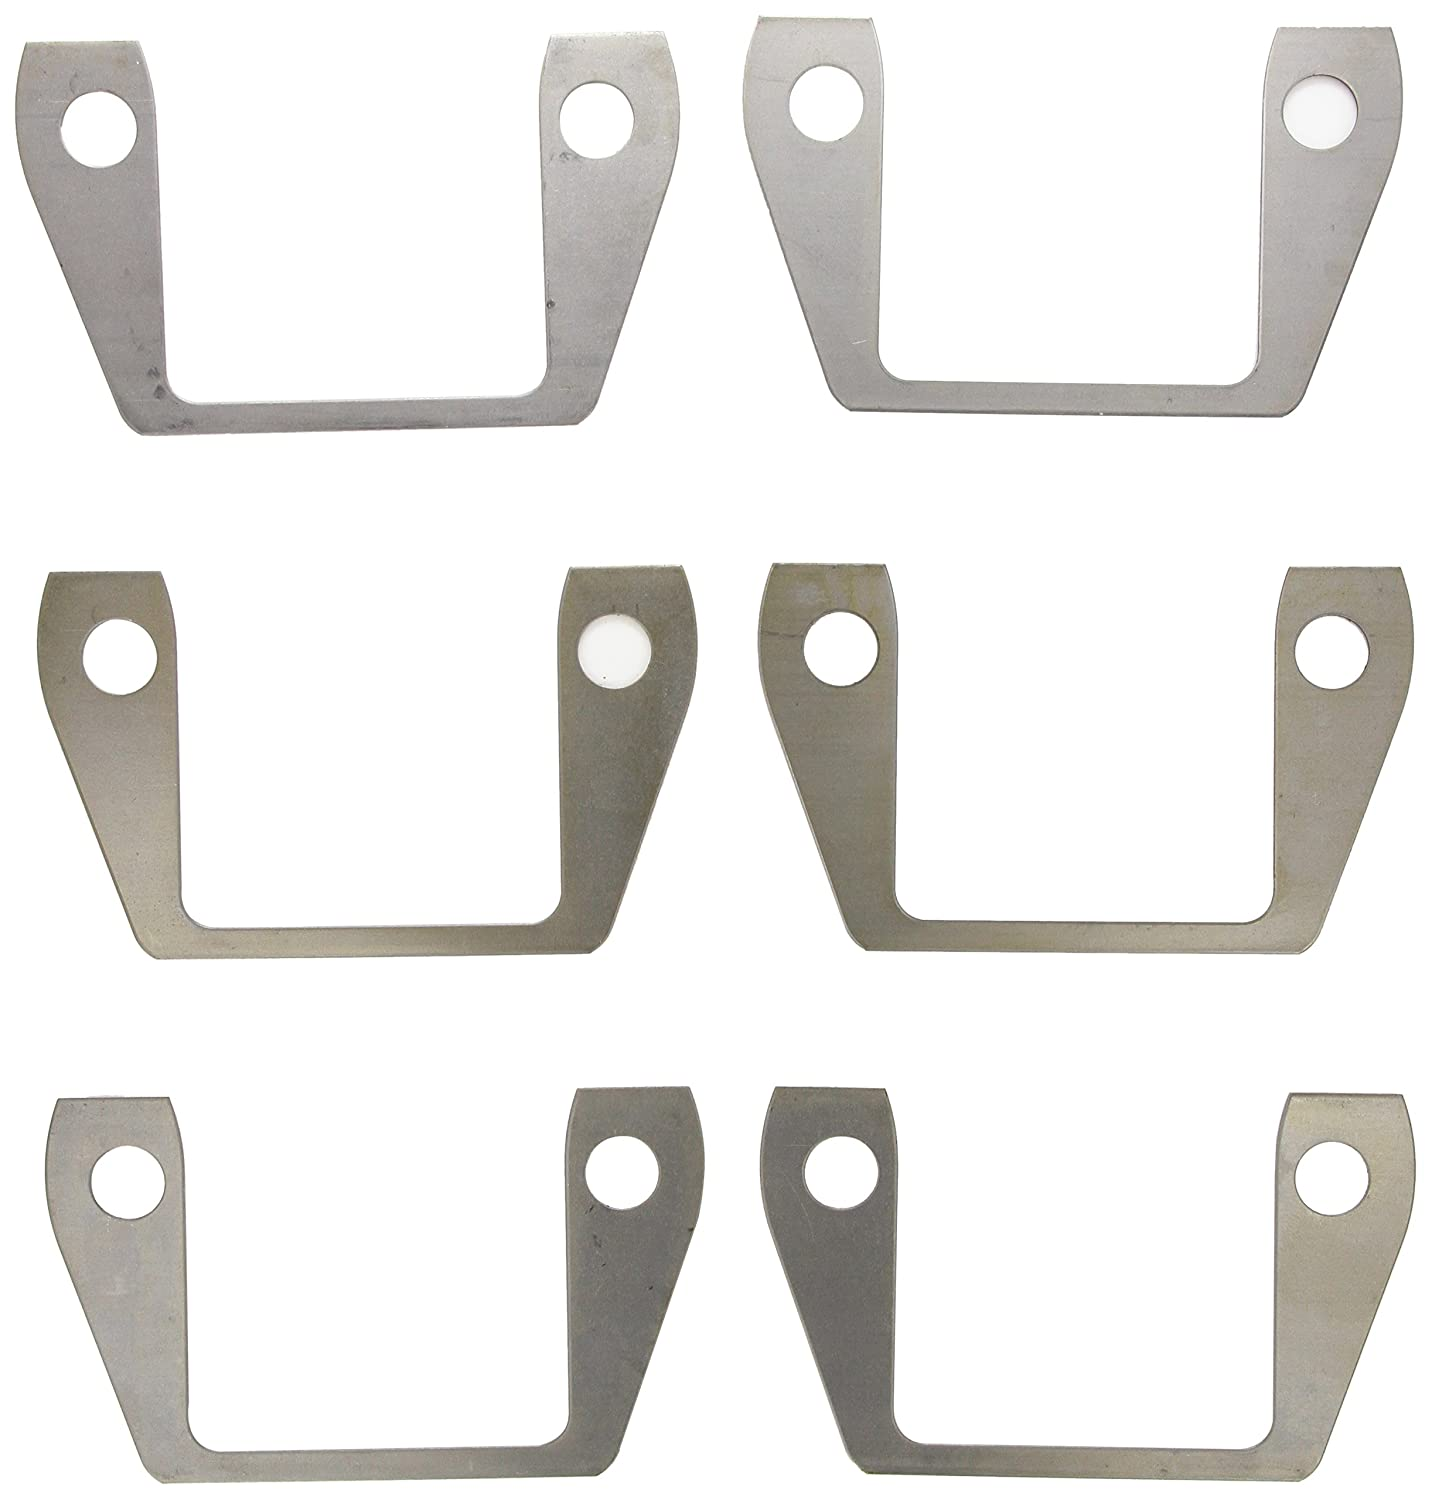 Specialty Products Company 36002 1//16 Thrust Angle Shim for Peterbilt//Kenworth, Pack of 6